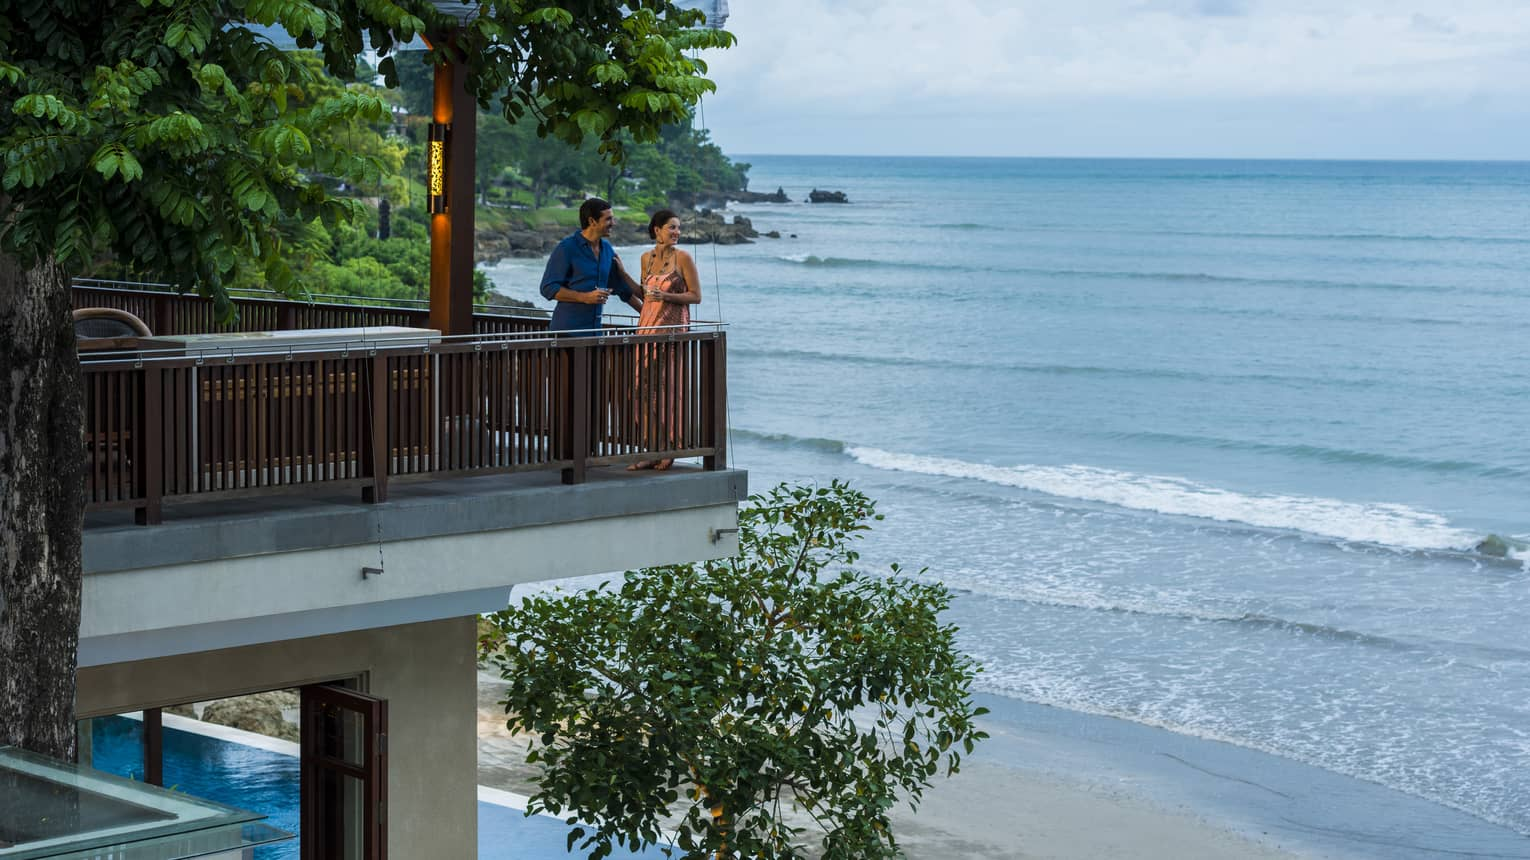 Man and woman stand at corner of balcony, look out at ocean